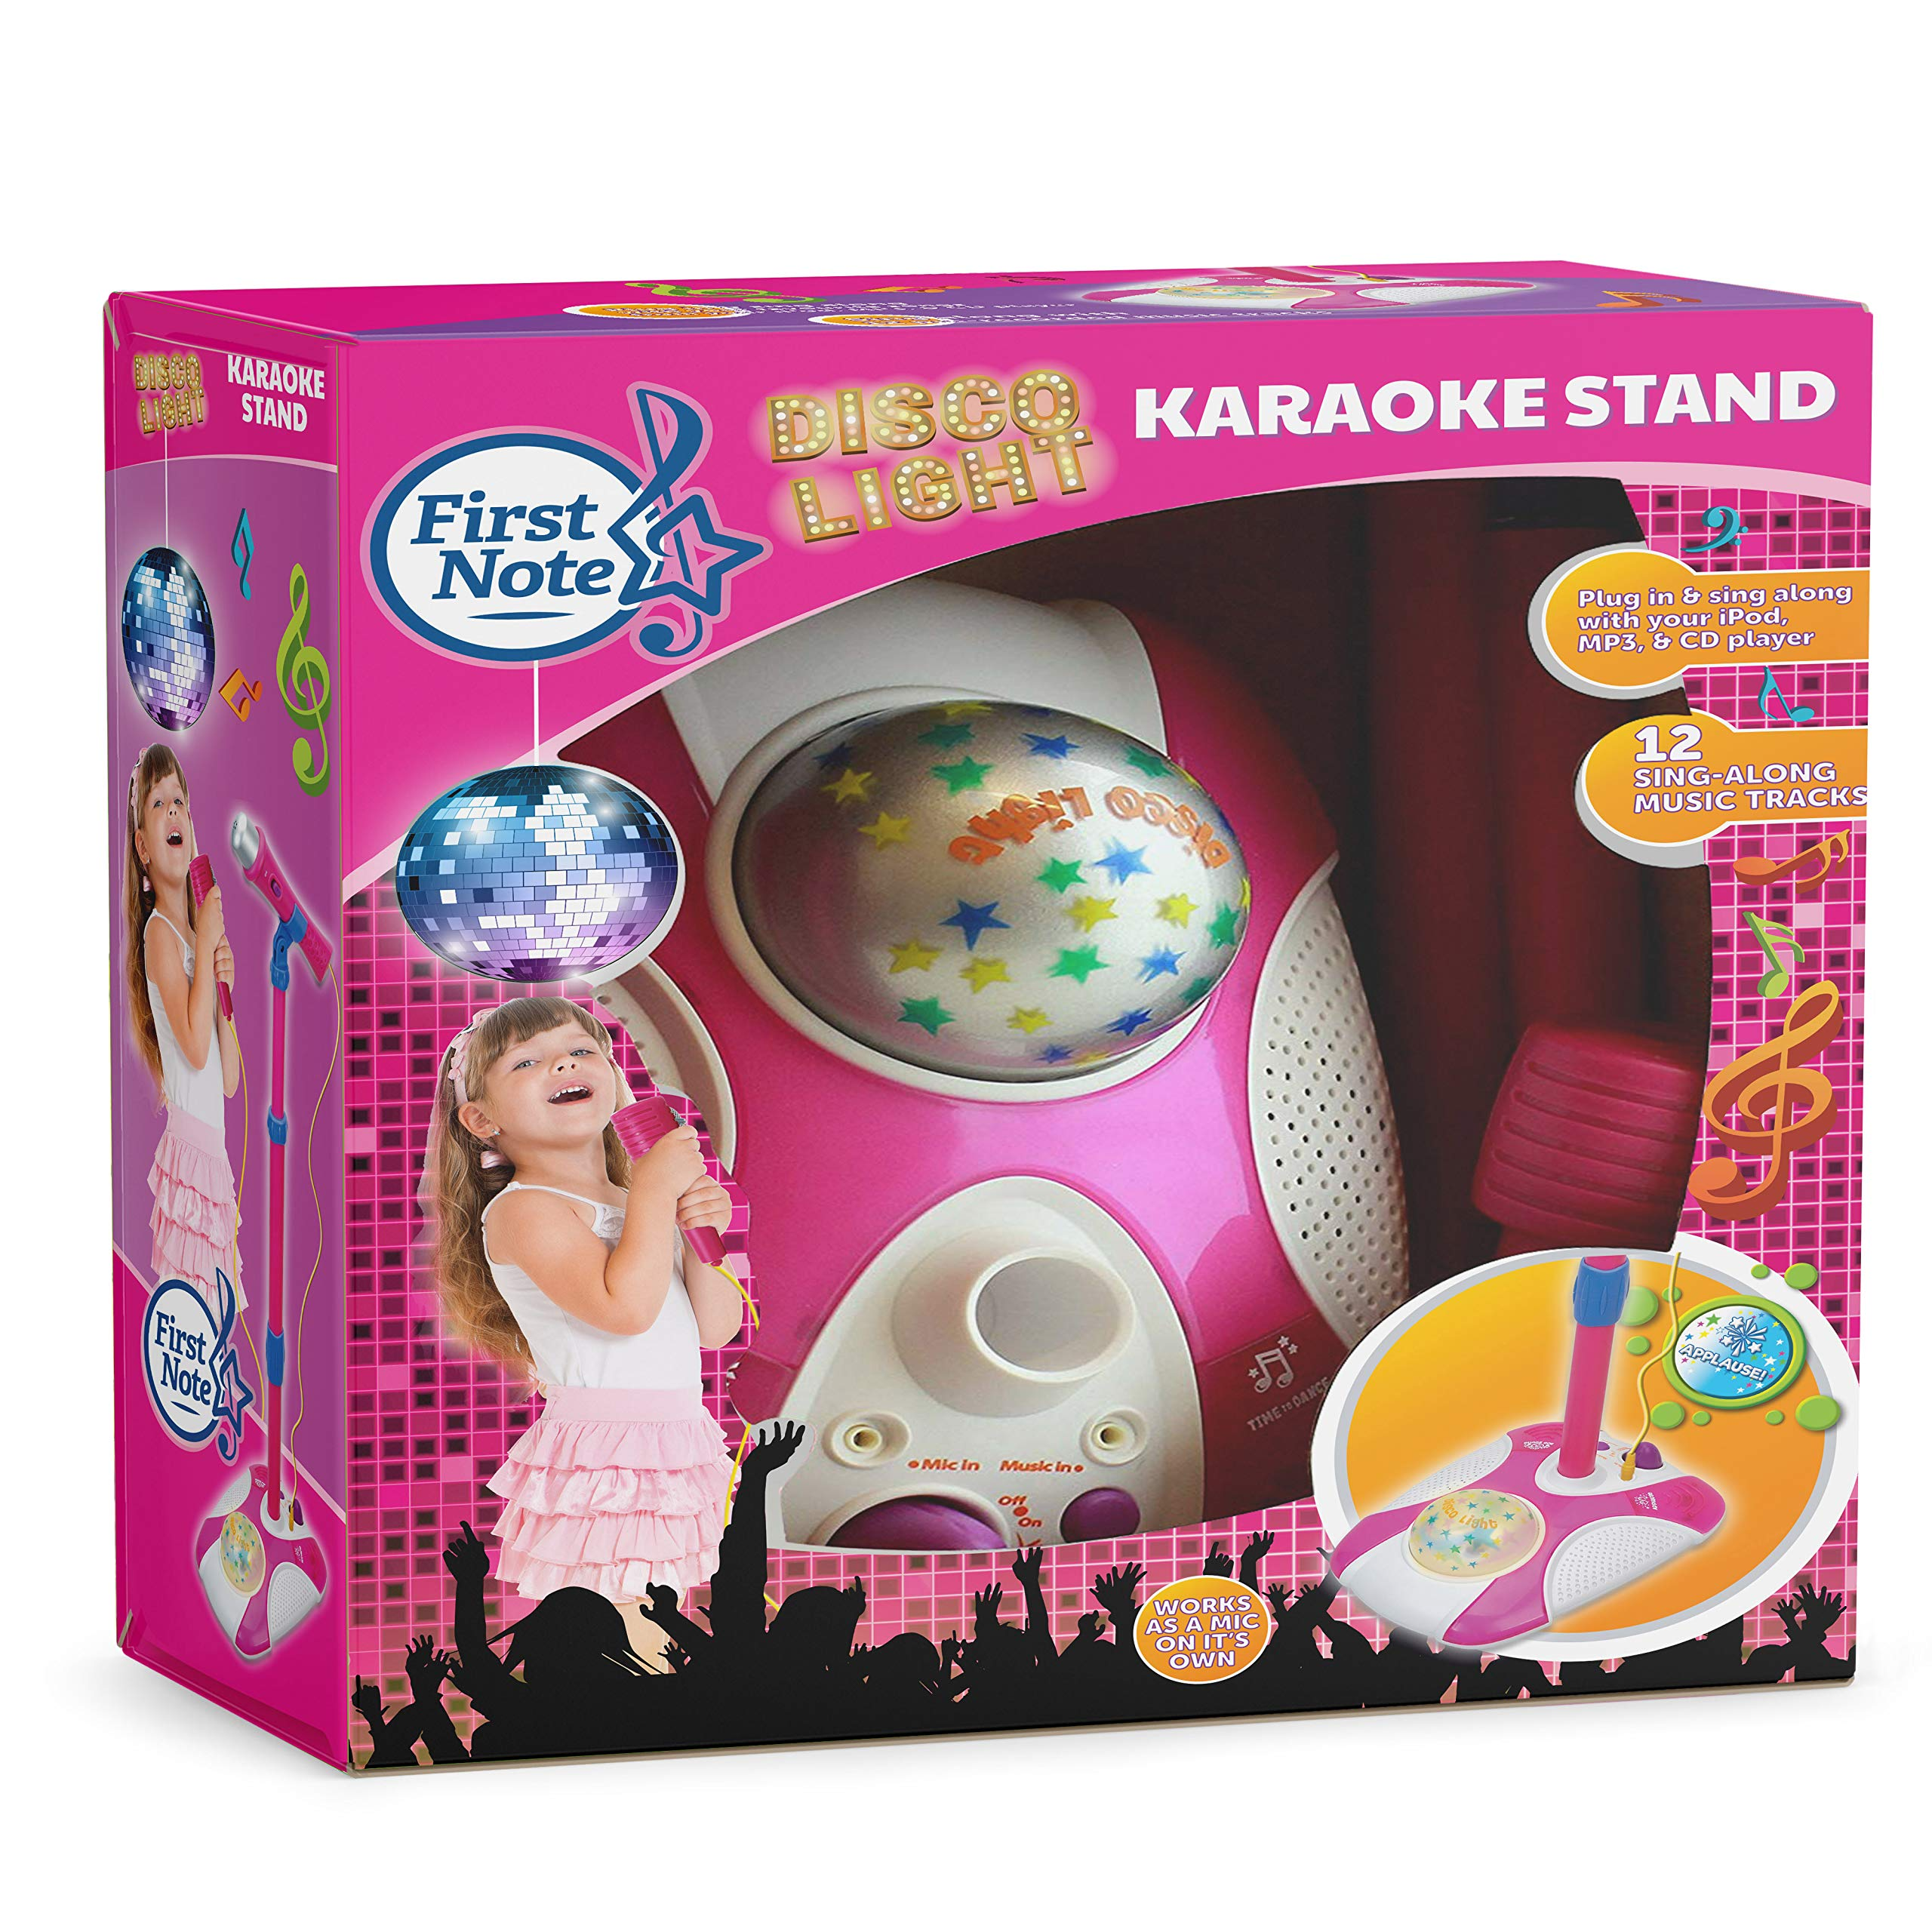 Karaoke Disco Light Adjustable Mic & Speaker Stand! Connects to iPods, Smartphones & MP3 Players and Includes 12 pre-Loaded Popular Songs(Blue) by IQ Toys (Image #7)